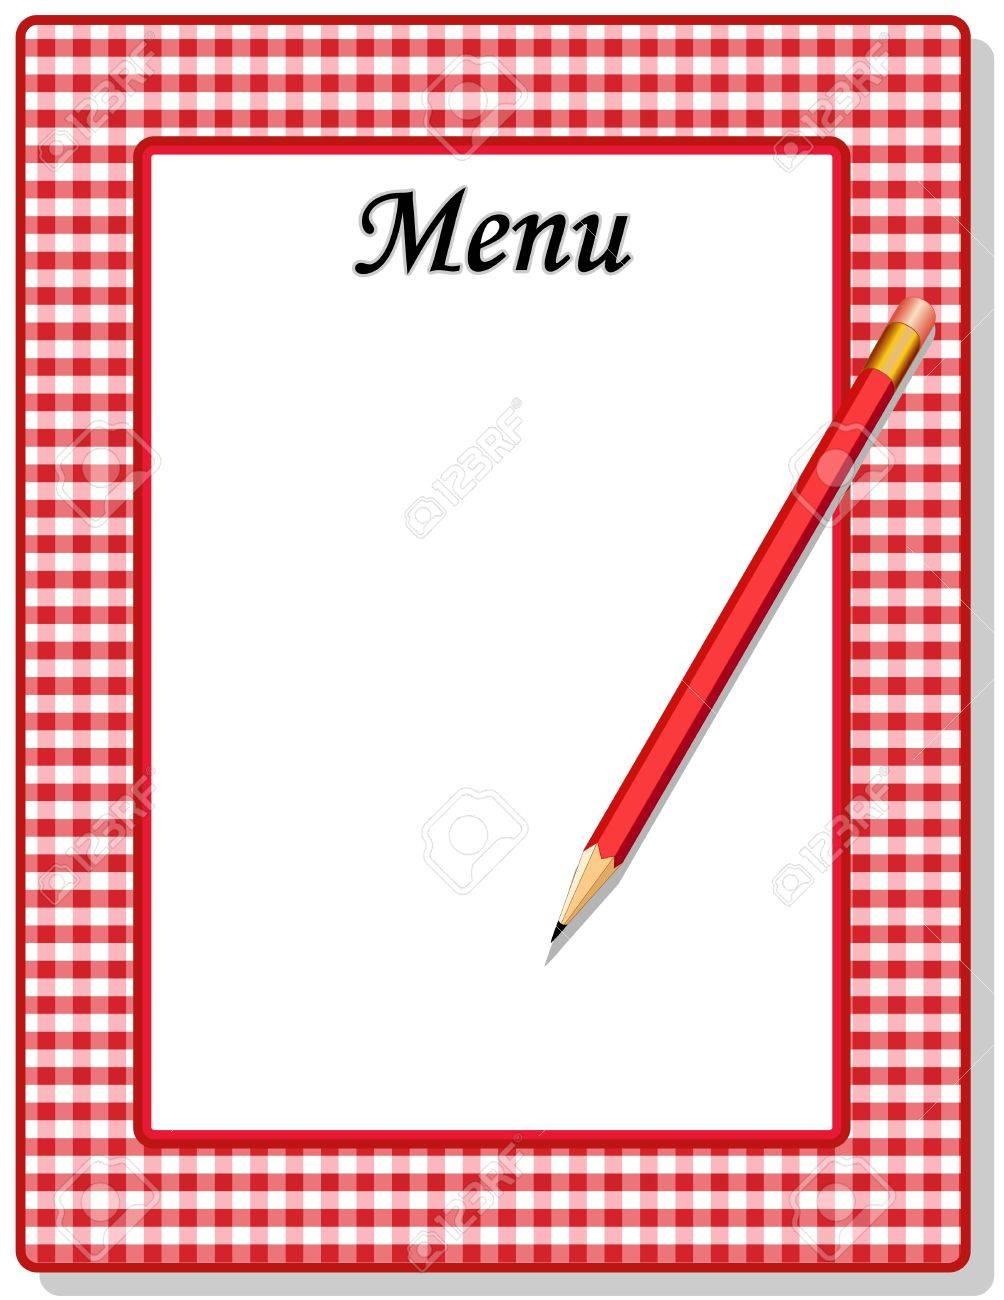 Retro Menu with red gingham check frame and pencil, for restaurant, diner, cafe or bistro Stock Vector - 13699673